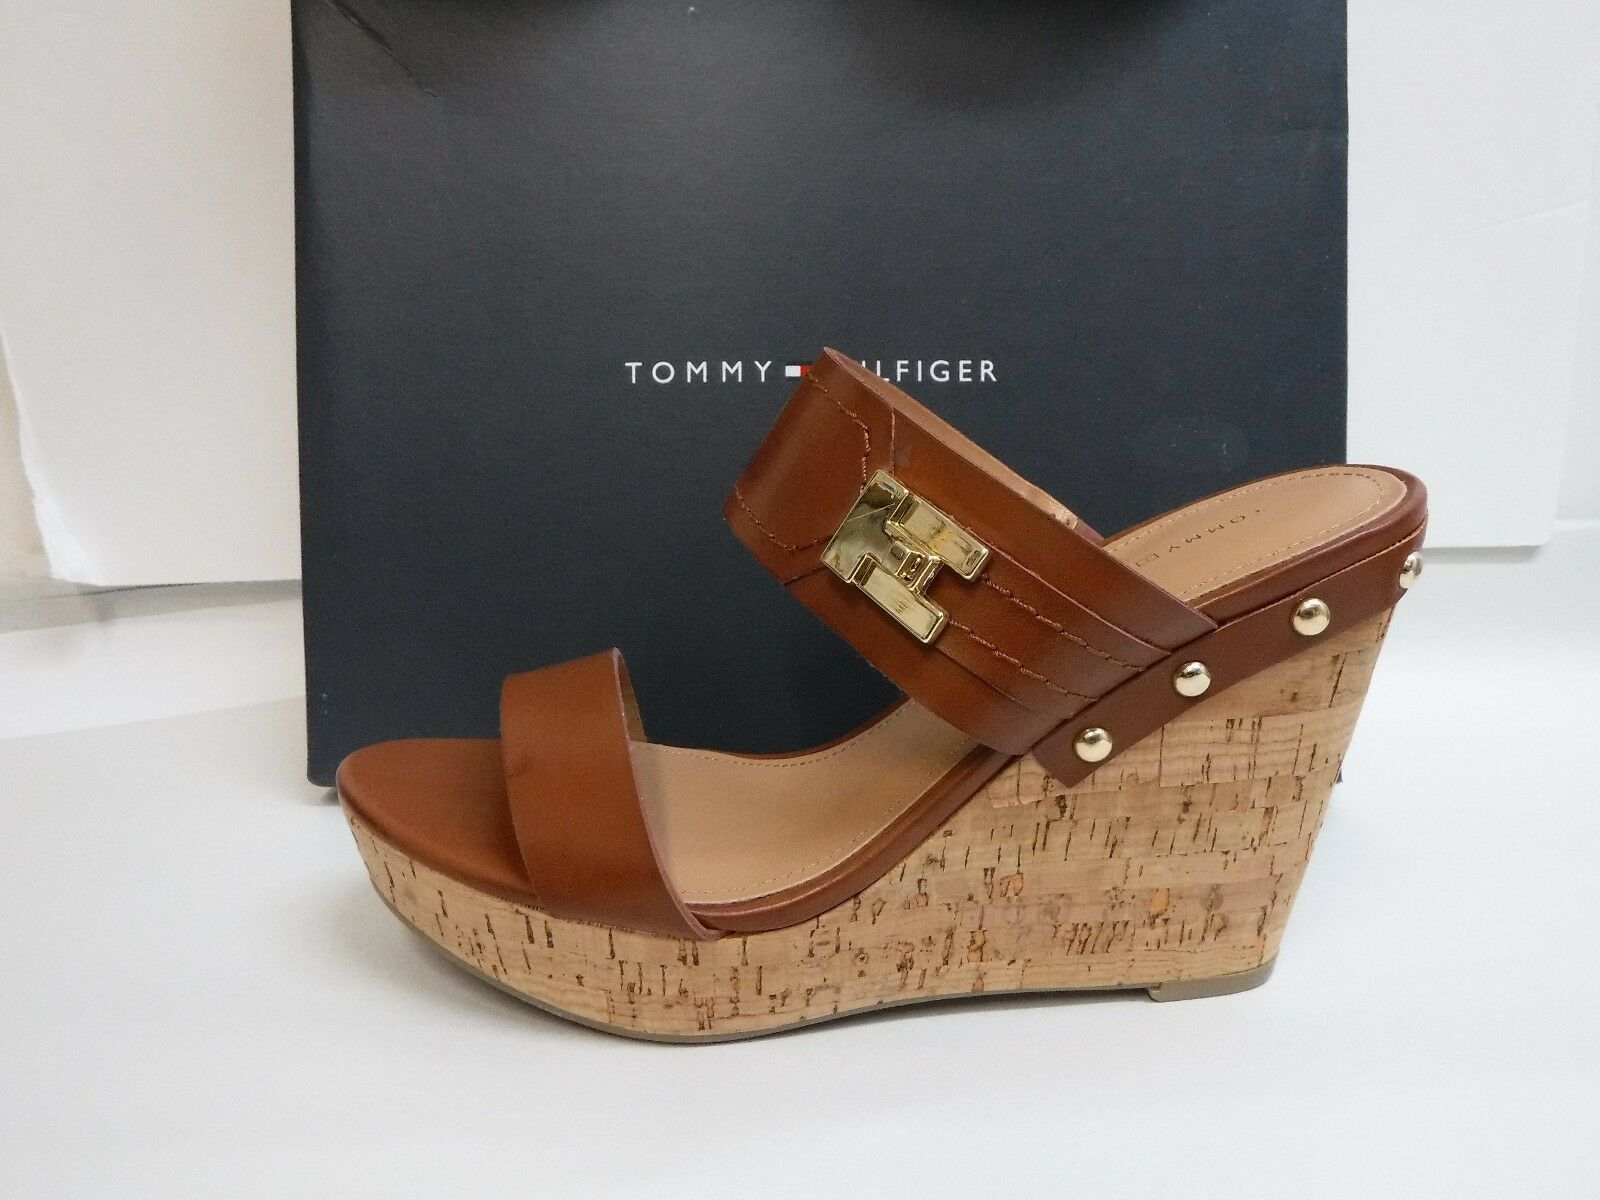 Tommy Size Hilfiger Size Tommy 9 Wedge Sandals Heels New Donna Shoes ba3066